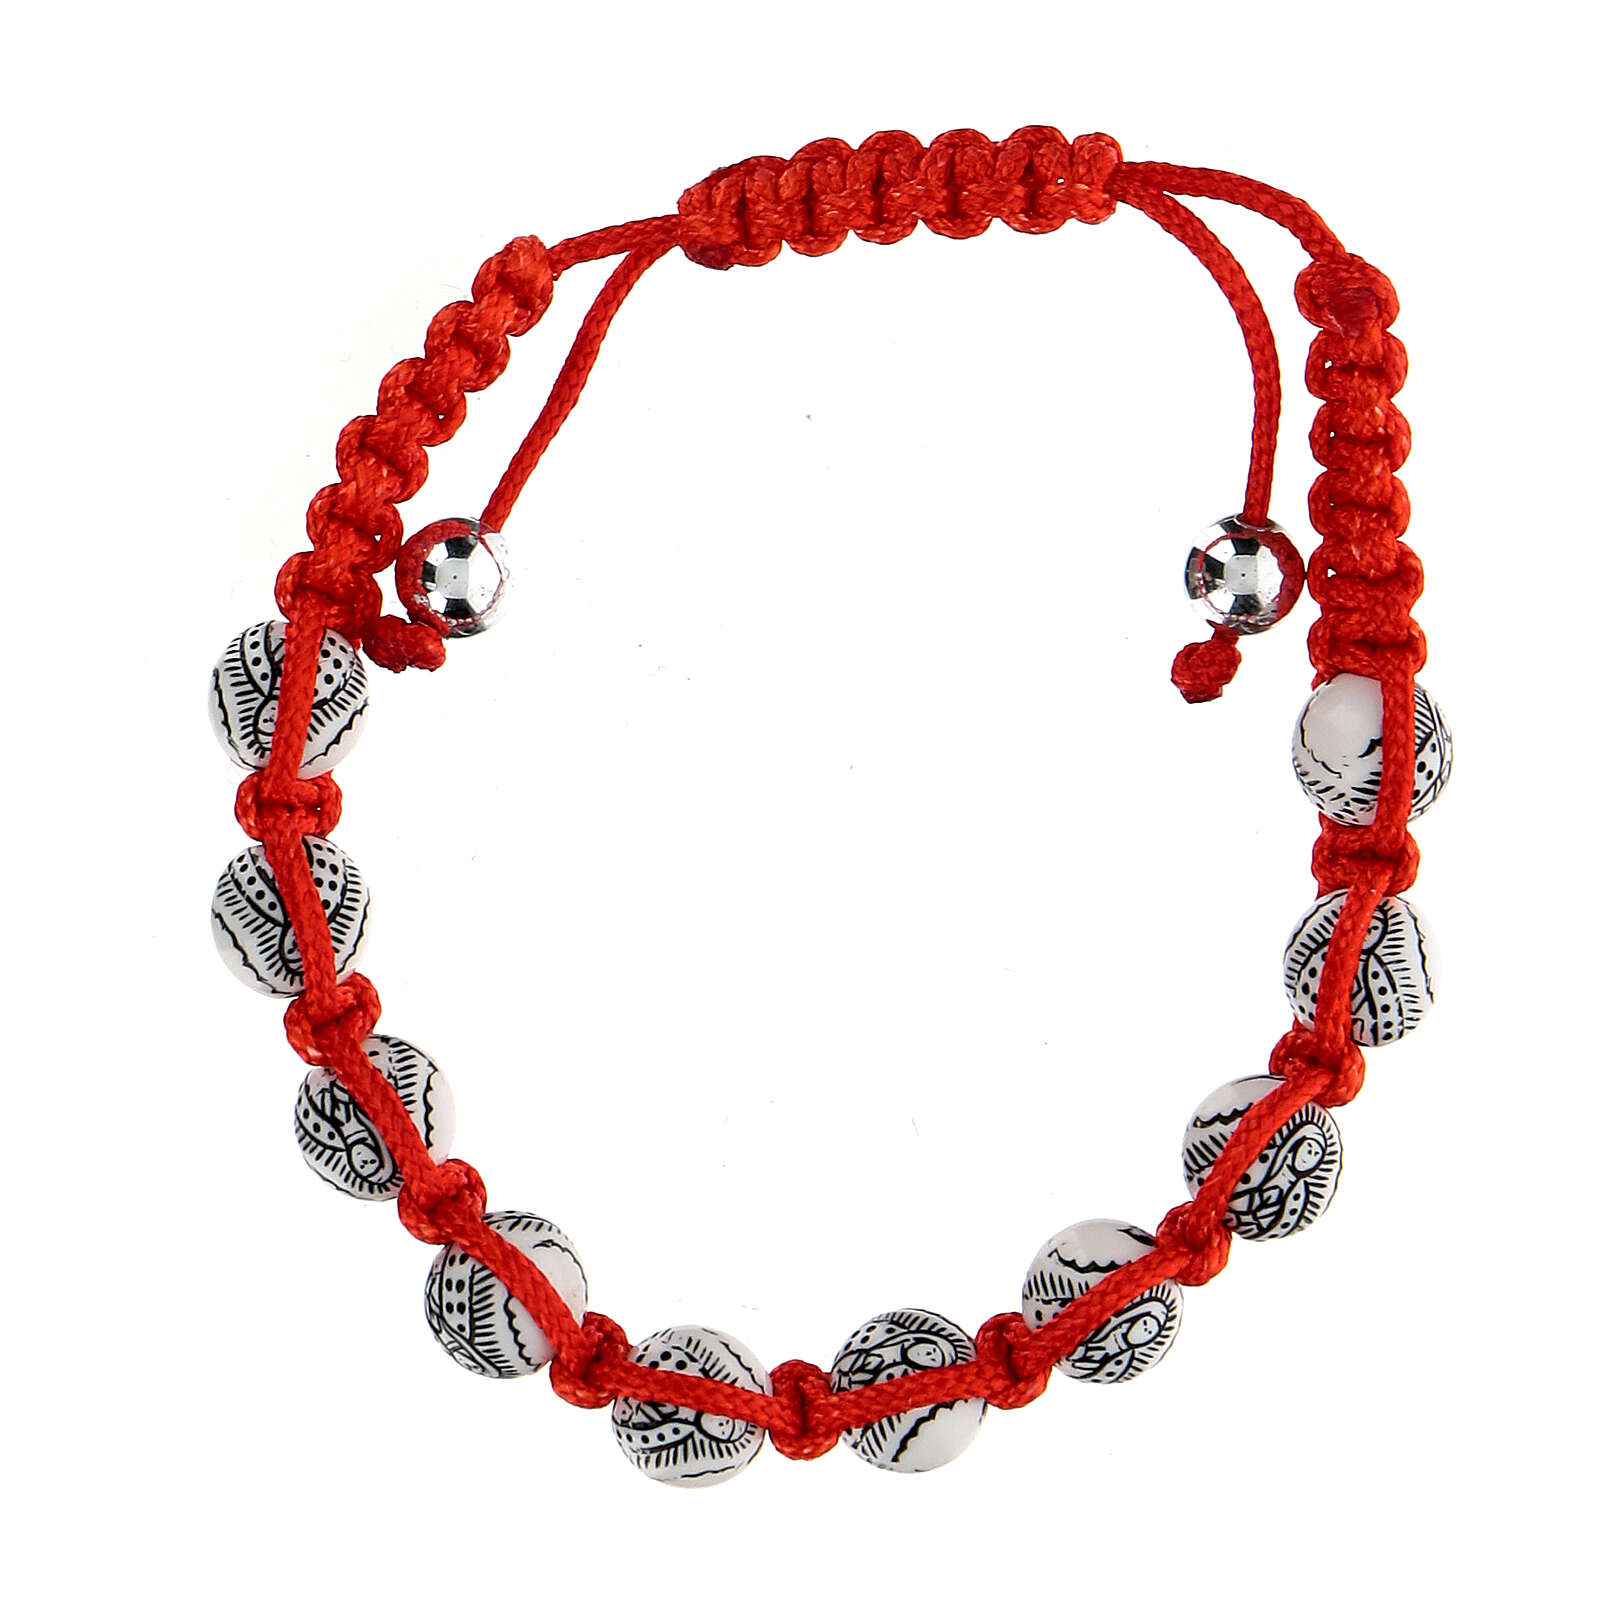 Ten-bead bracelet with Our Lady of Guadalupe in red rope 5 mm 4